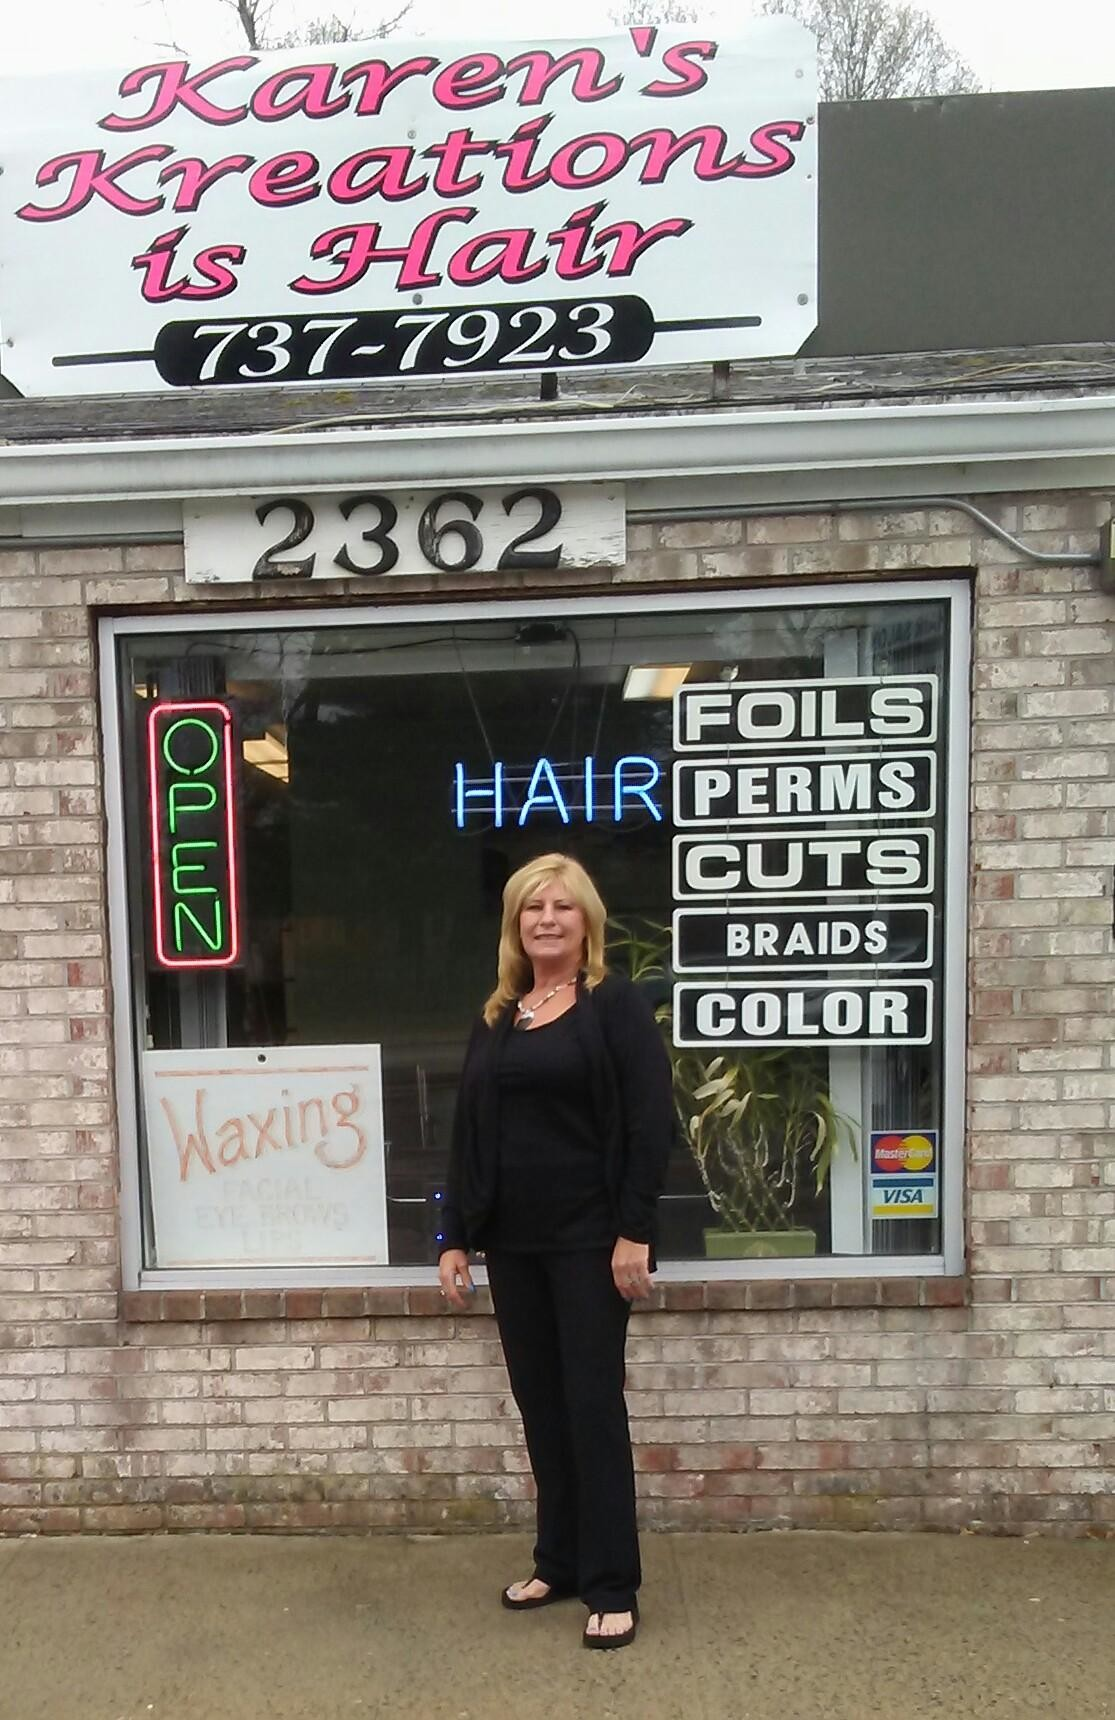 Meet Karen Sutton, the owner of Karen's Kreations Hail Salon and 35-year cosmetologist, posing here in front of her salon on West Shore Road.